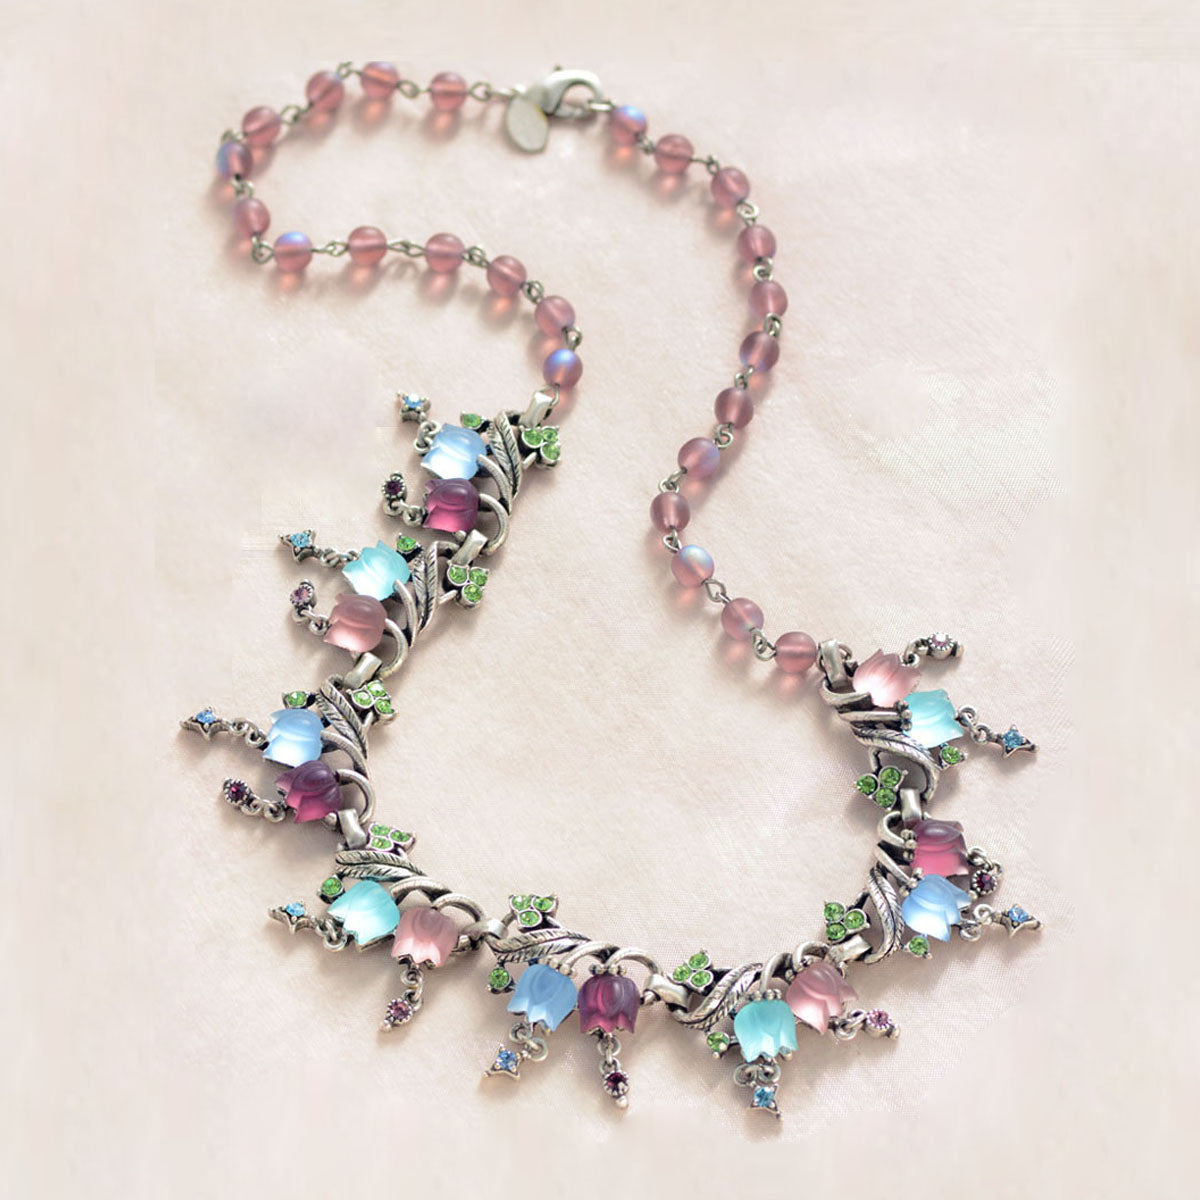 Pastel Satin Tulips Necklace N144 - Sweet Romance Wholesale